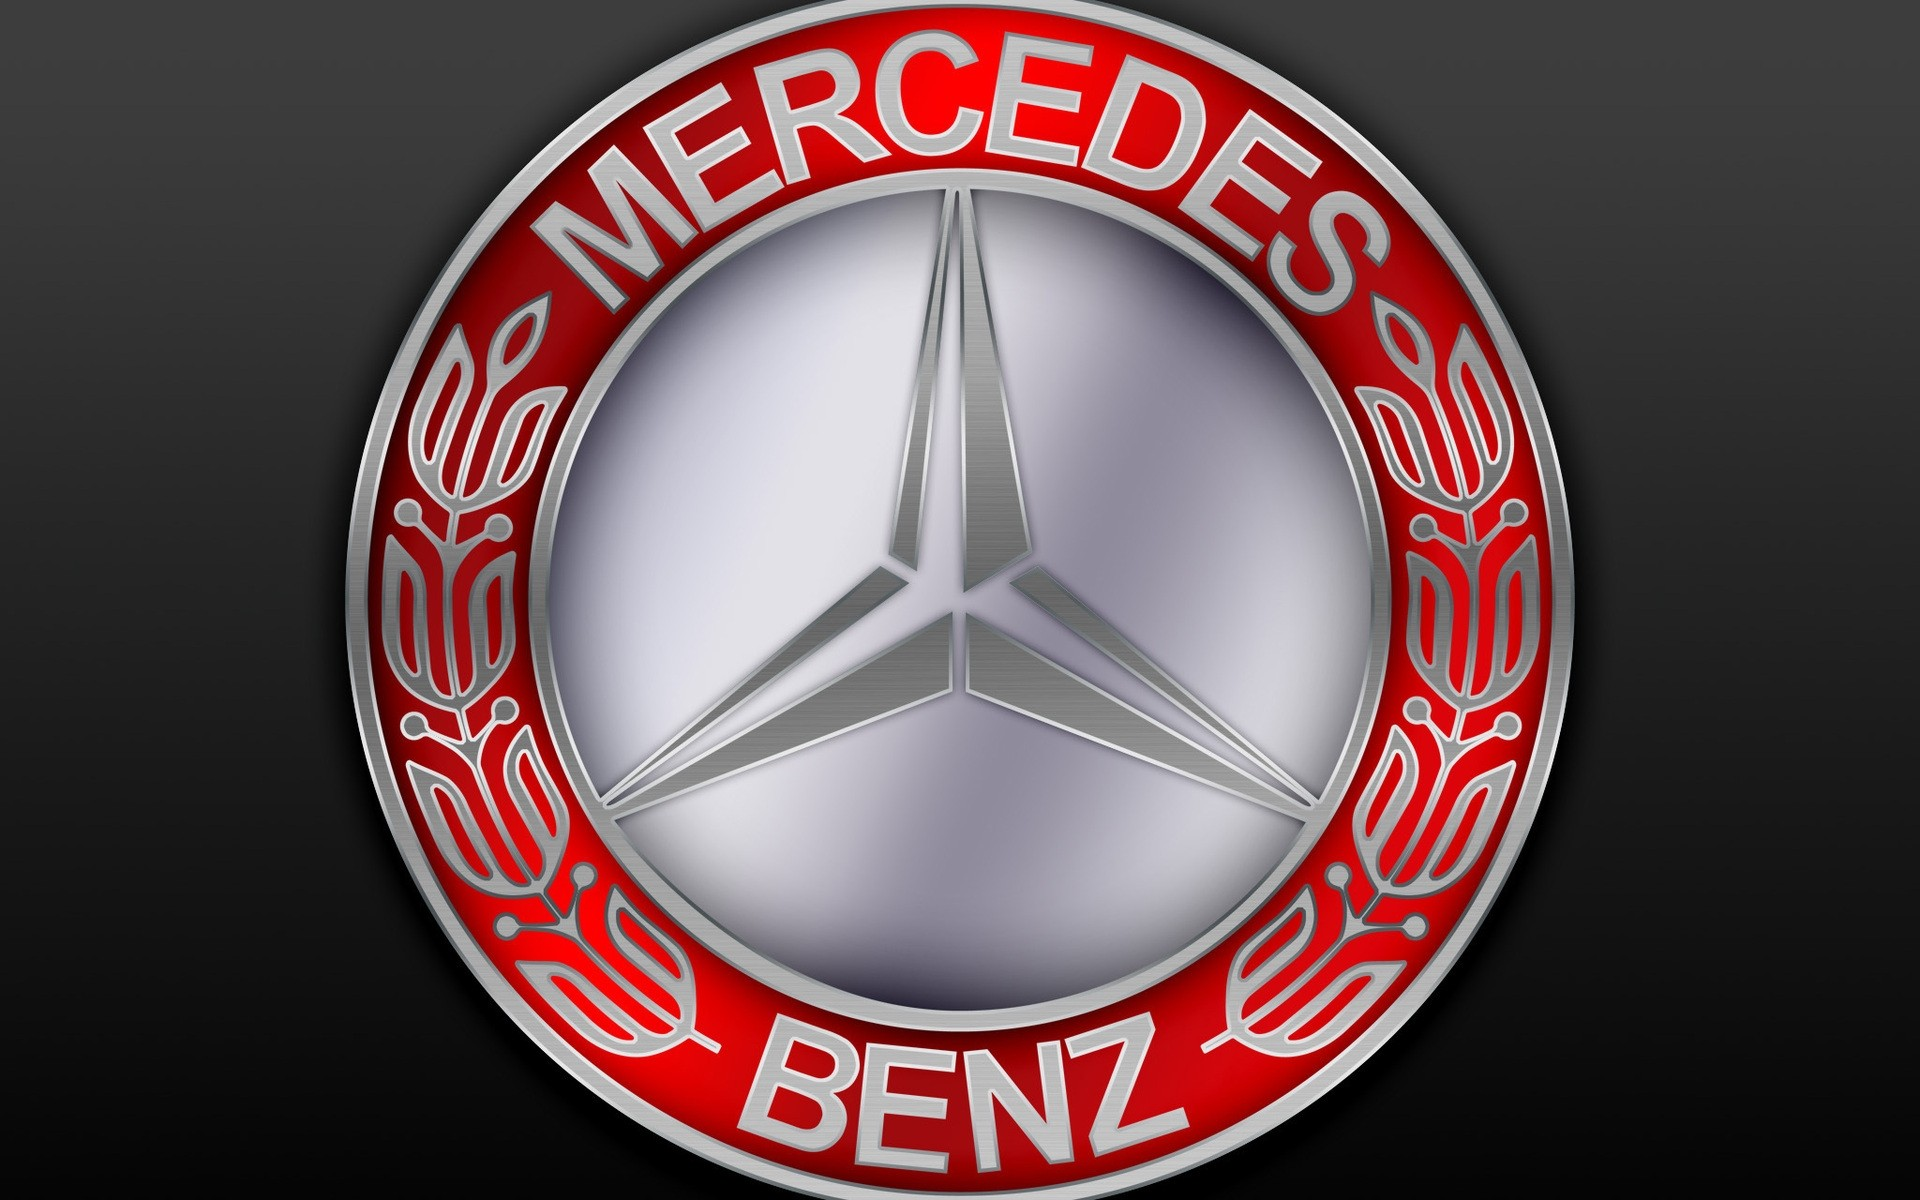 Mercedes Benz Logo Iphone Wallpapers For Free